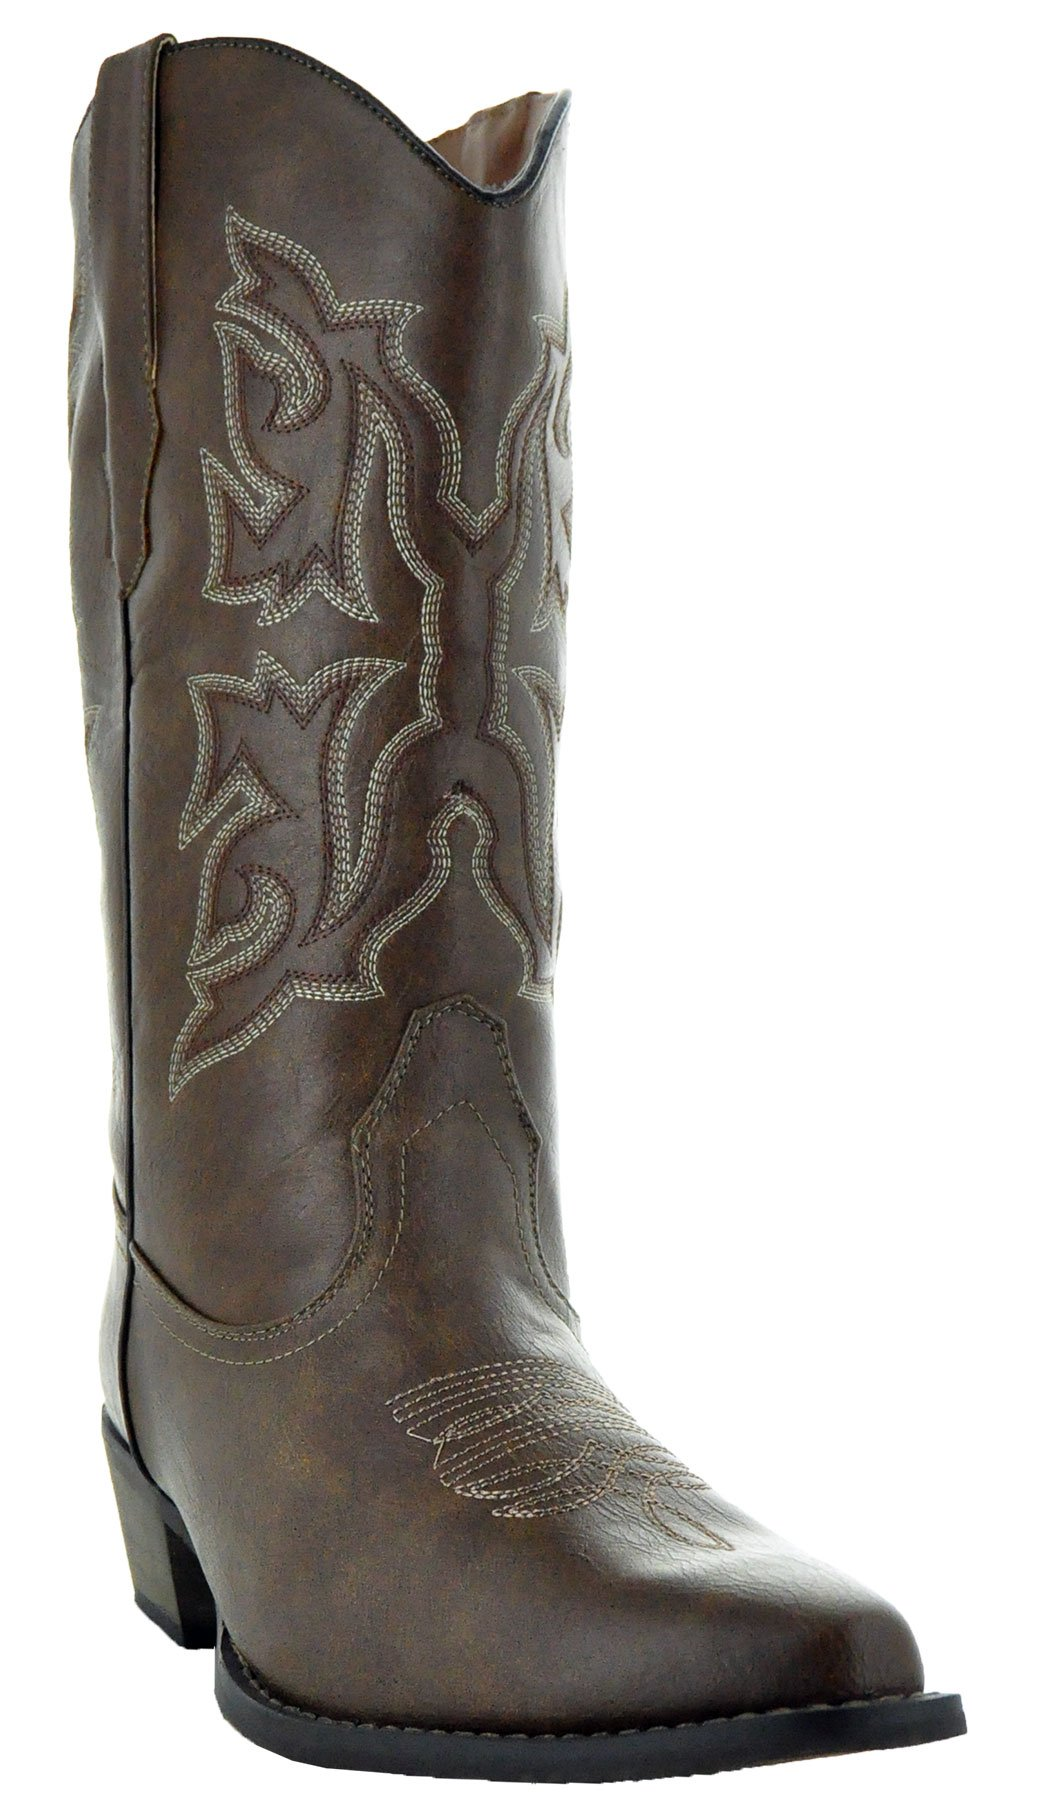 Country Love Pointed Toe Women's Cowboy Boots W101-1001 (8.5, Brown)